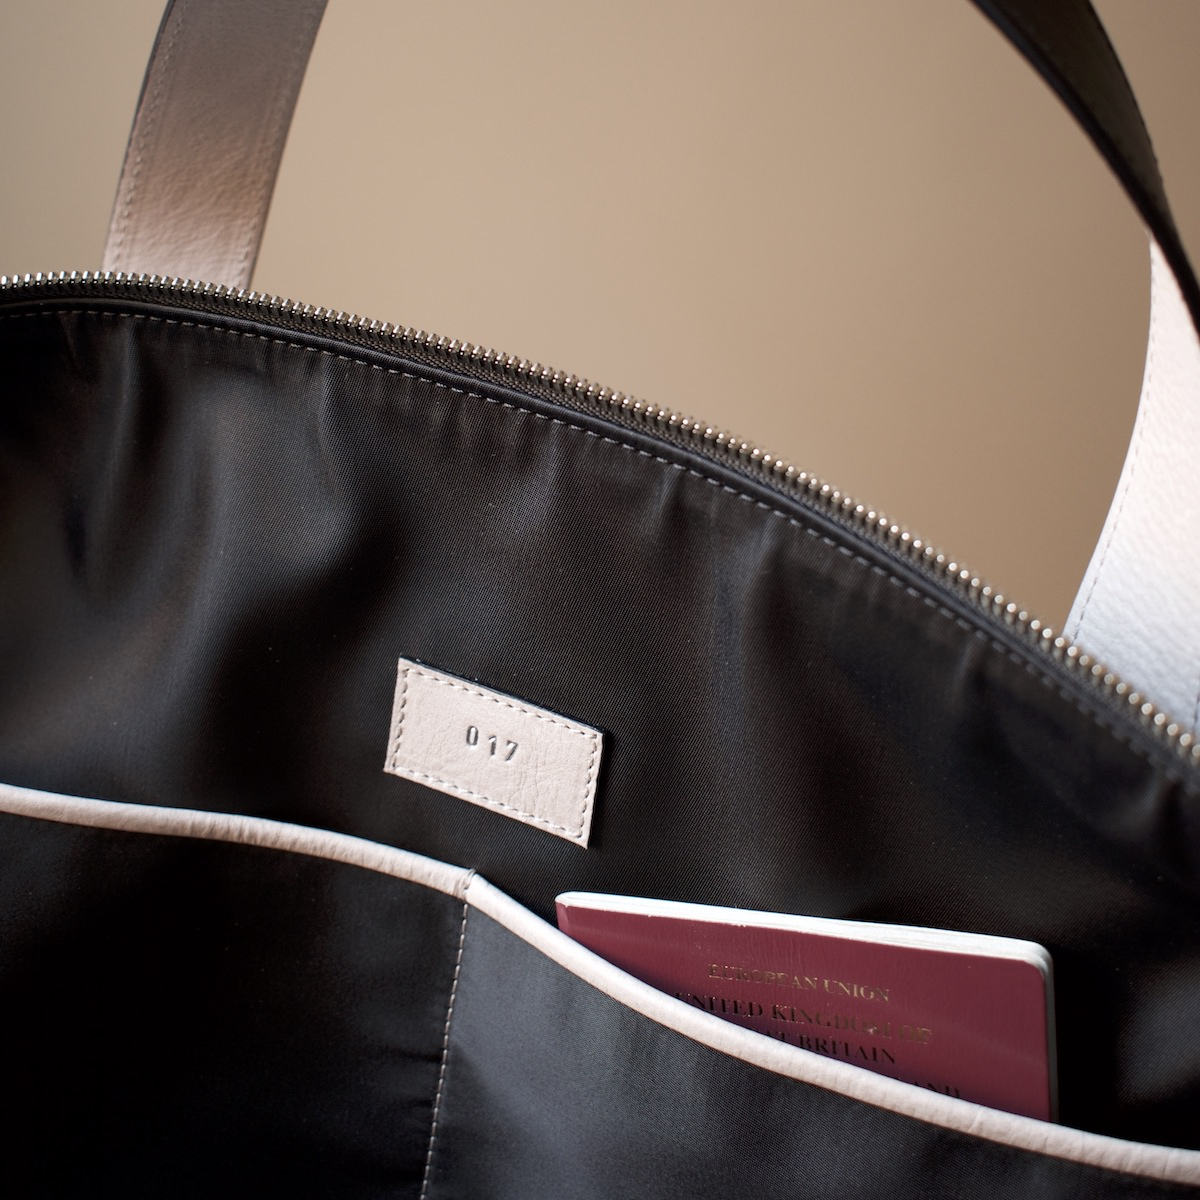 Each bag is individually numbered